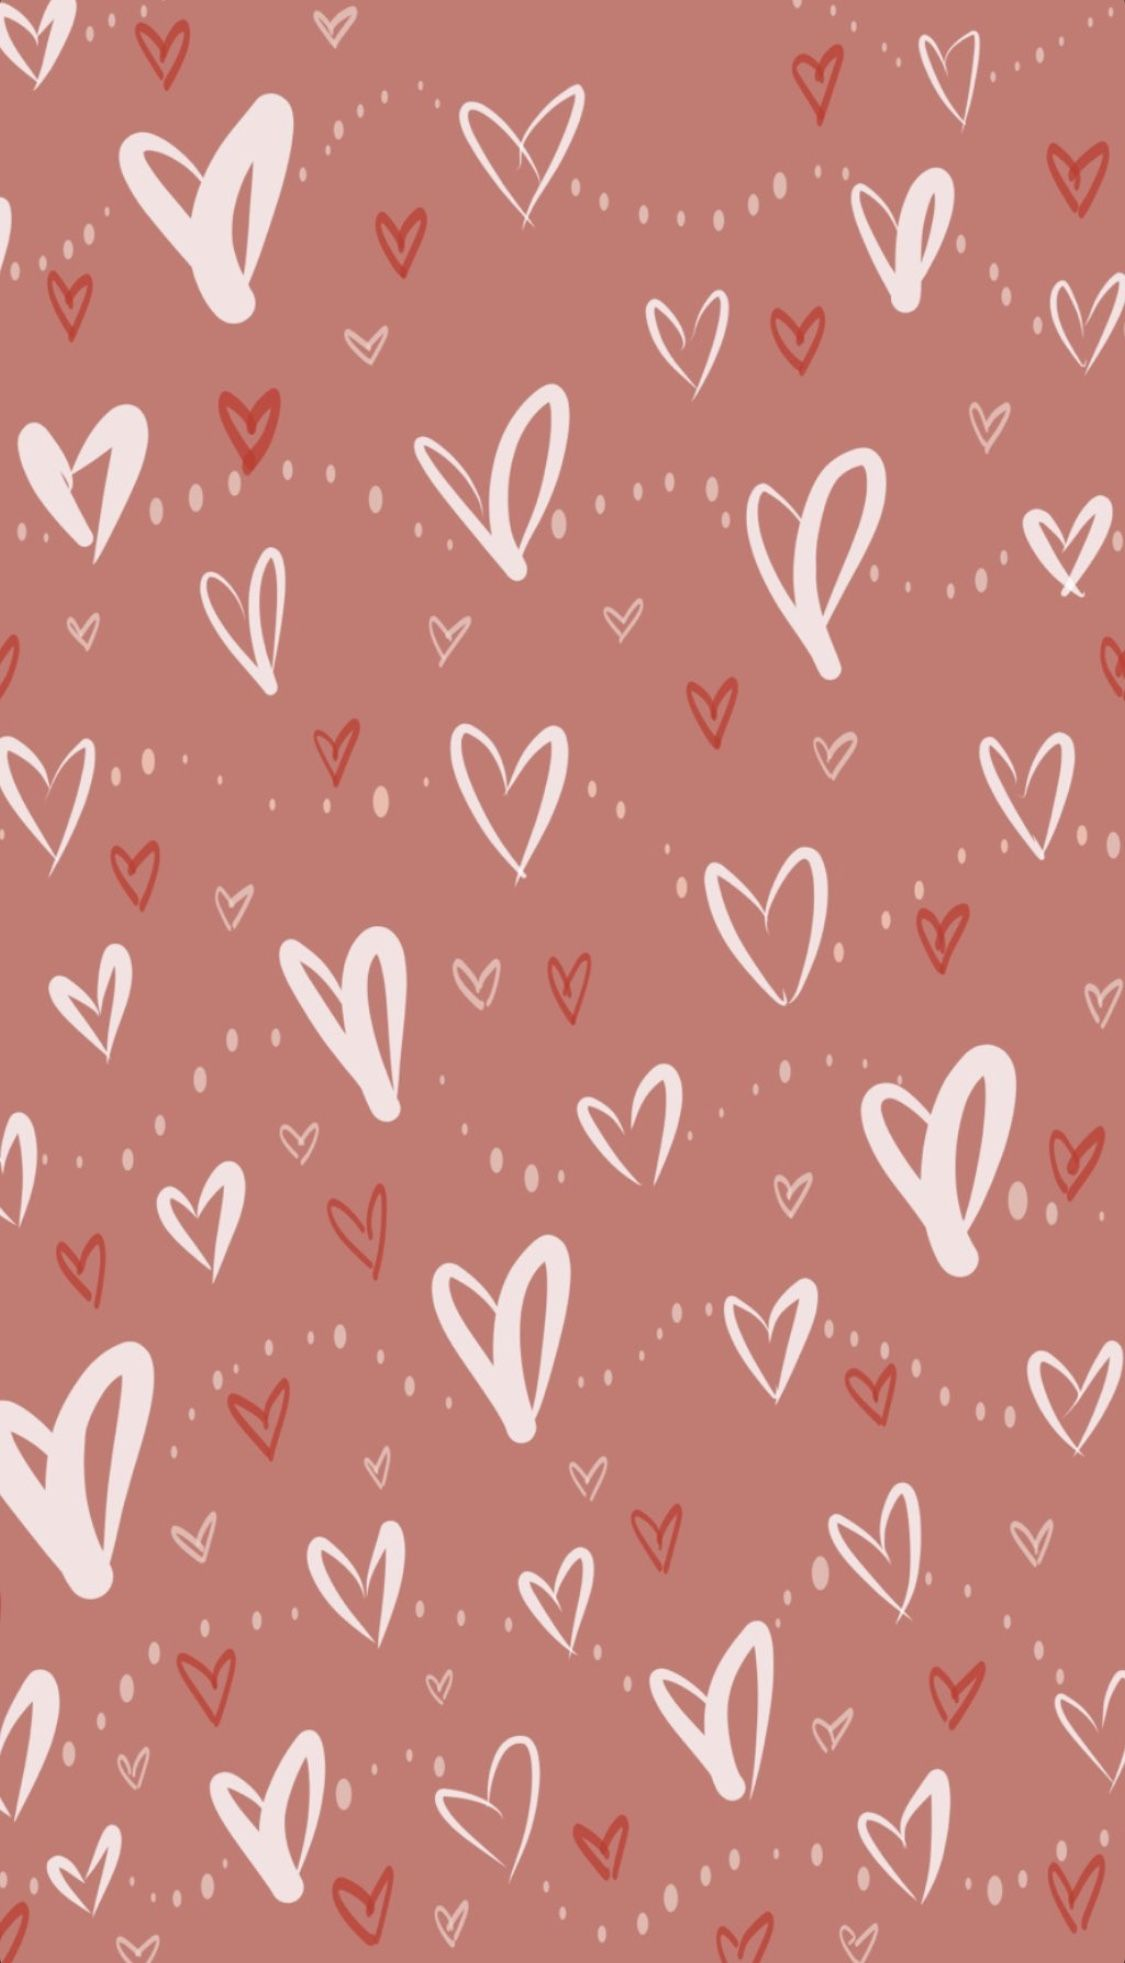 Cute Wallpapers For Iphone Valentines Day